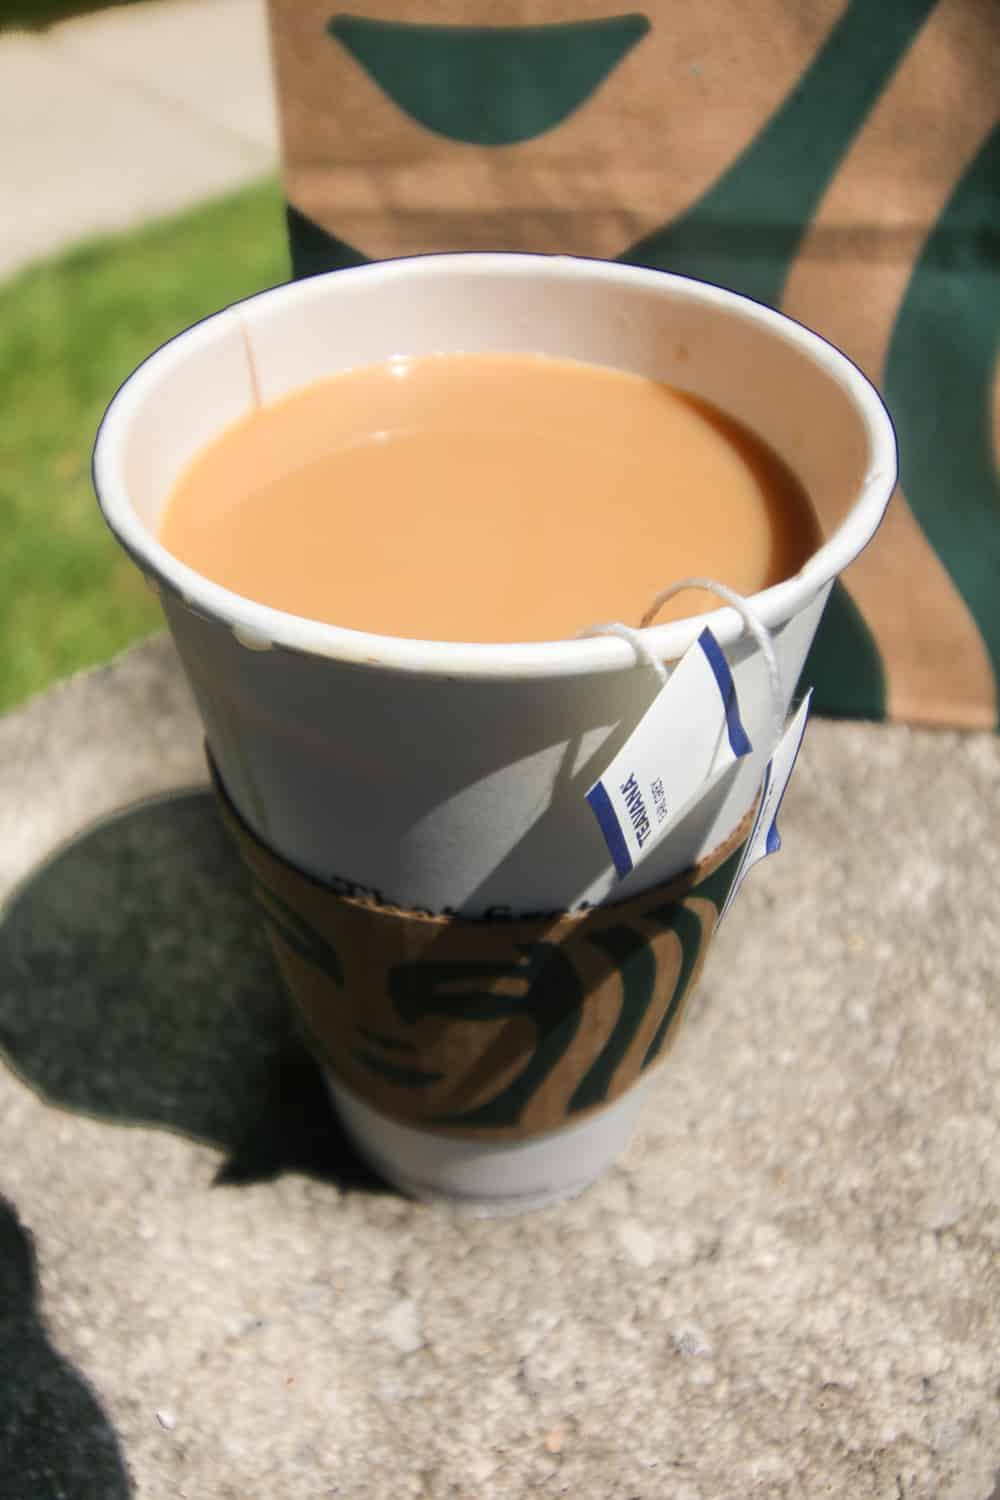 A large paper coffee cup filled with tea and cream.